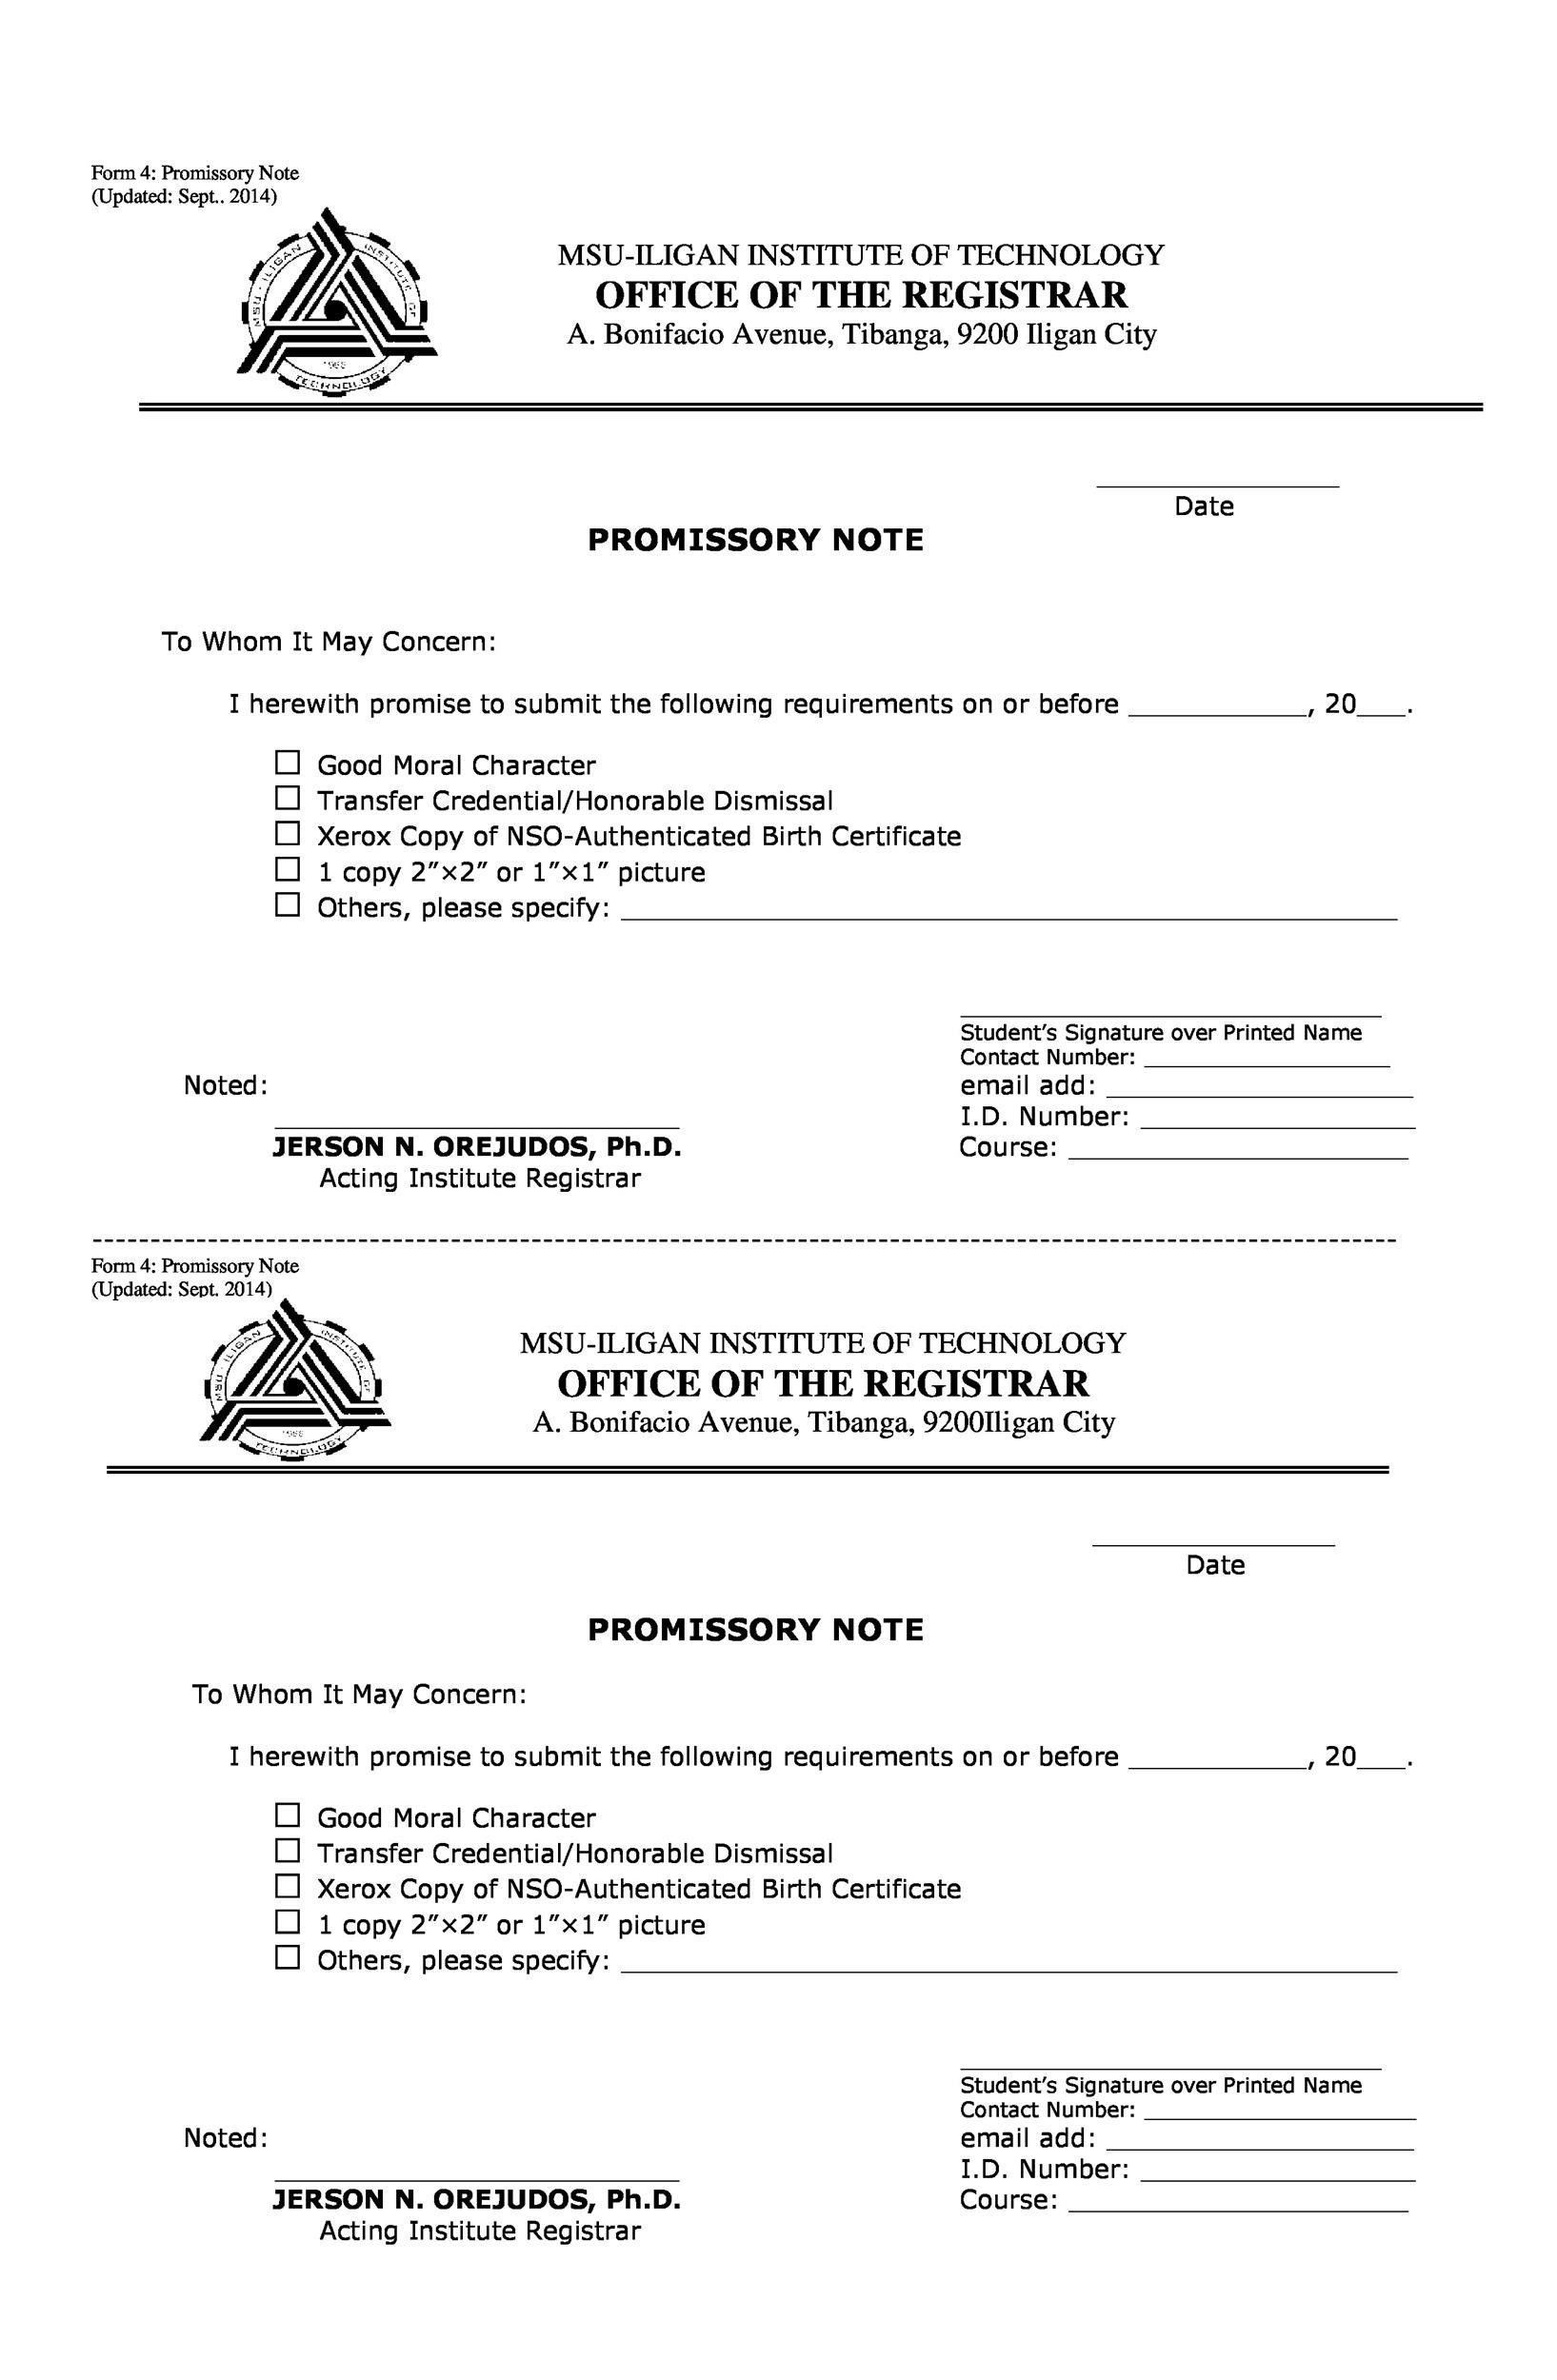 Amazing Printable Promissory Note Template 09 In Promissory Note Template